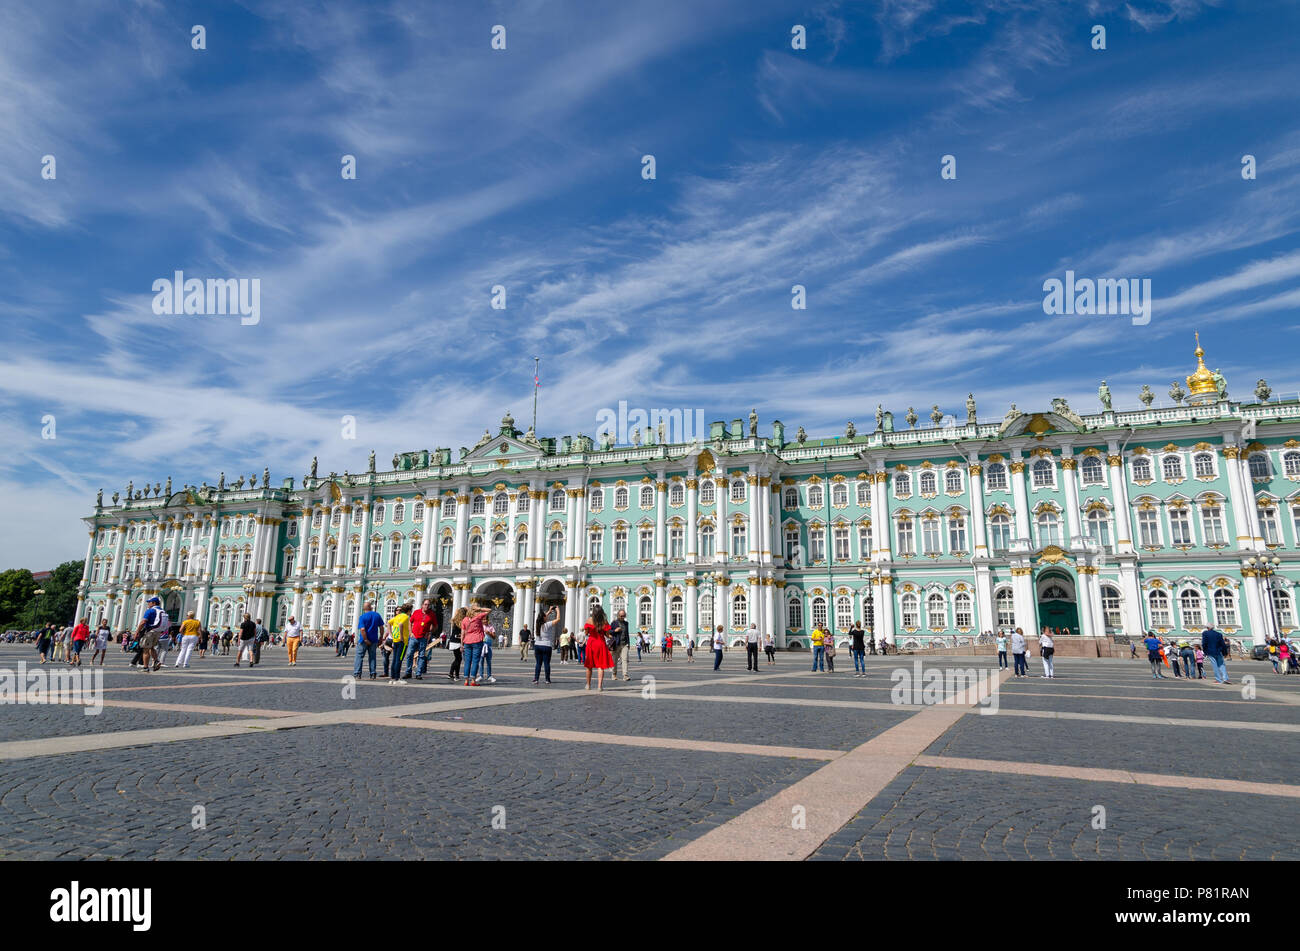 Tourists sightseeing at the Winter Palace from the Palace Square in St Petersburg - Stock Image